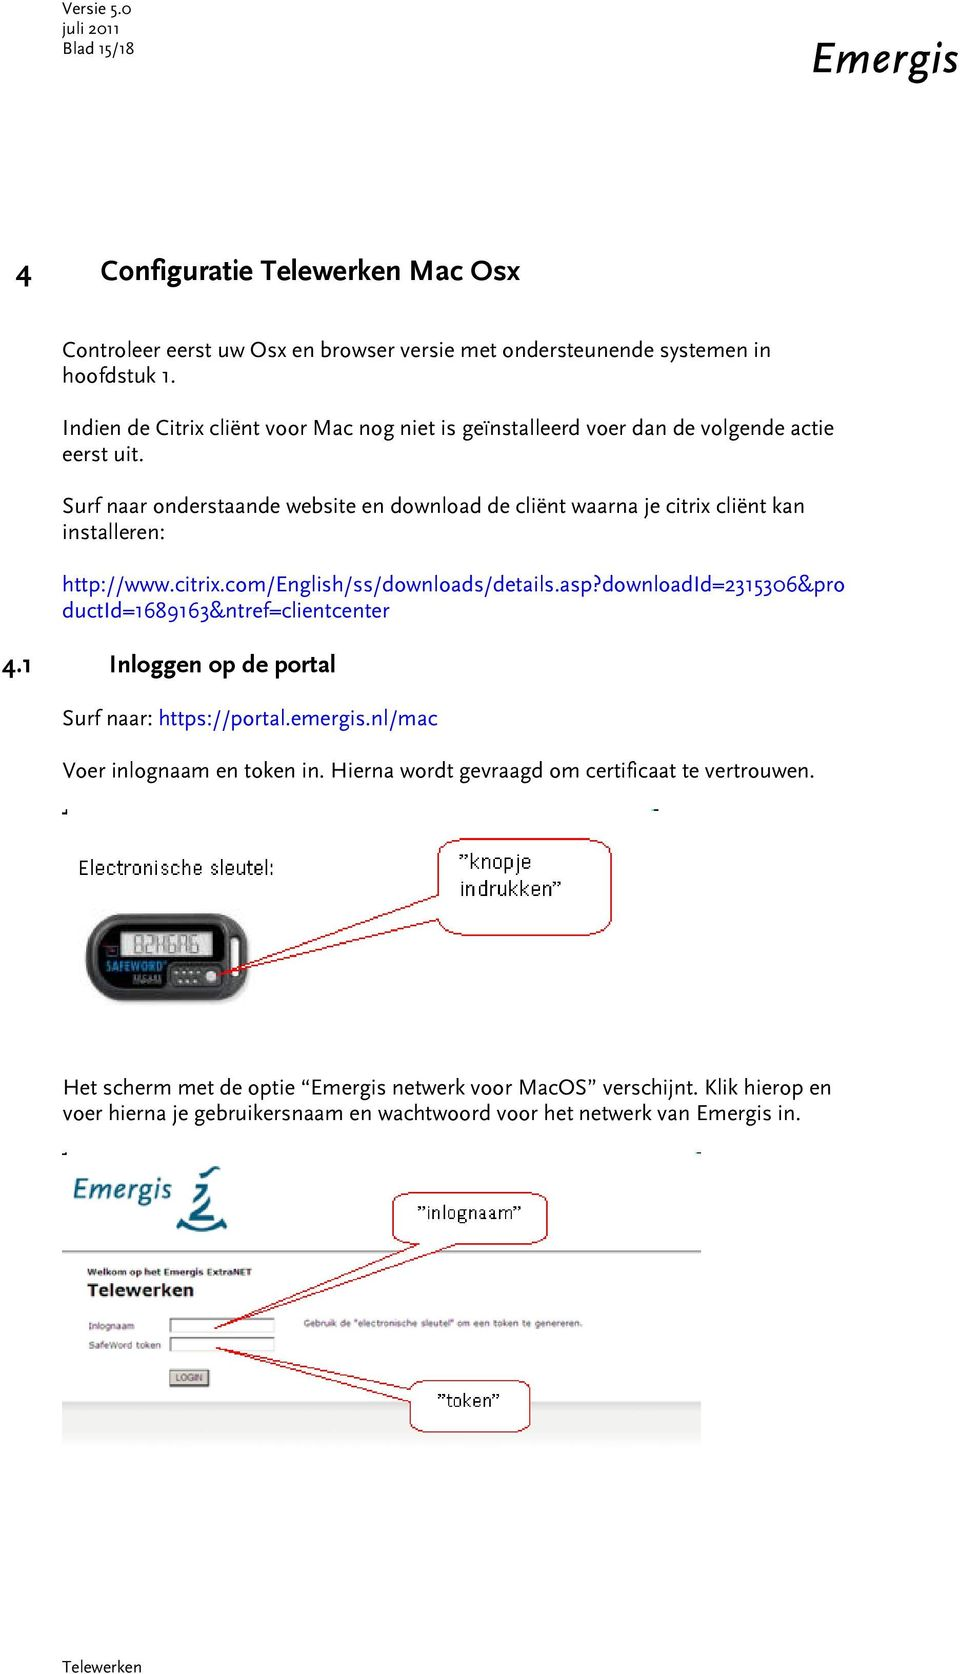 Surf naar onderstaande website en download de cliënt waarna je citrix cliënt kan installeren: http://www.citrix.com/english/ss/downloads/details.asp?